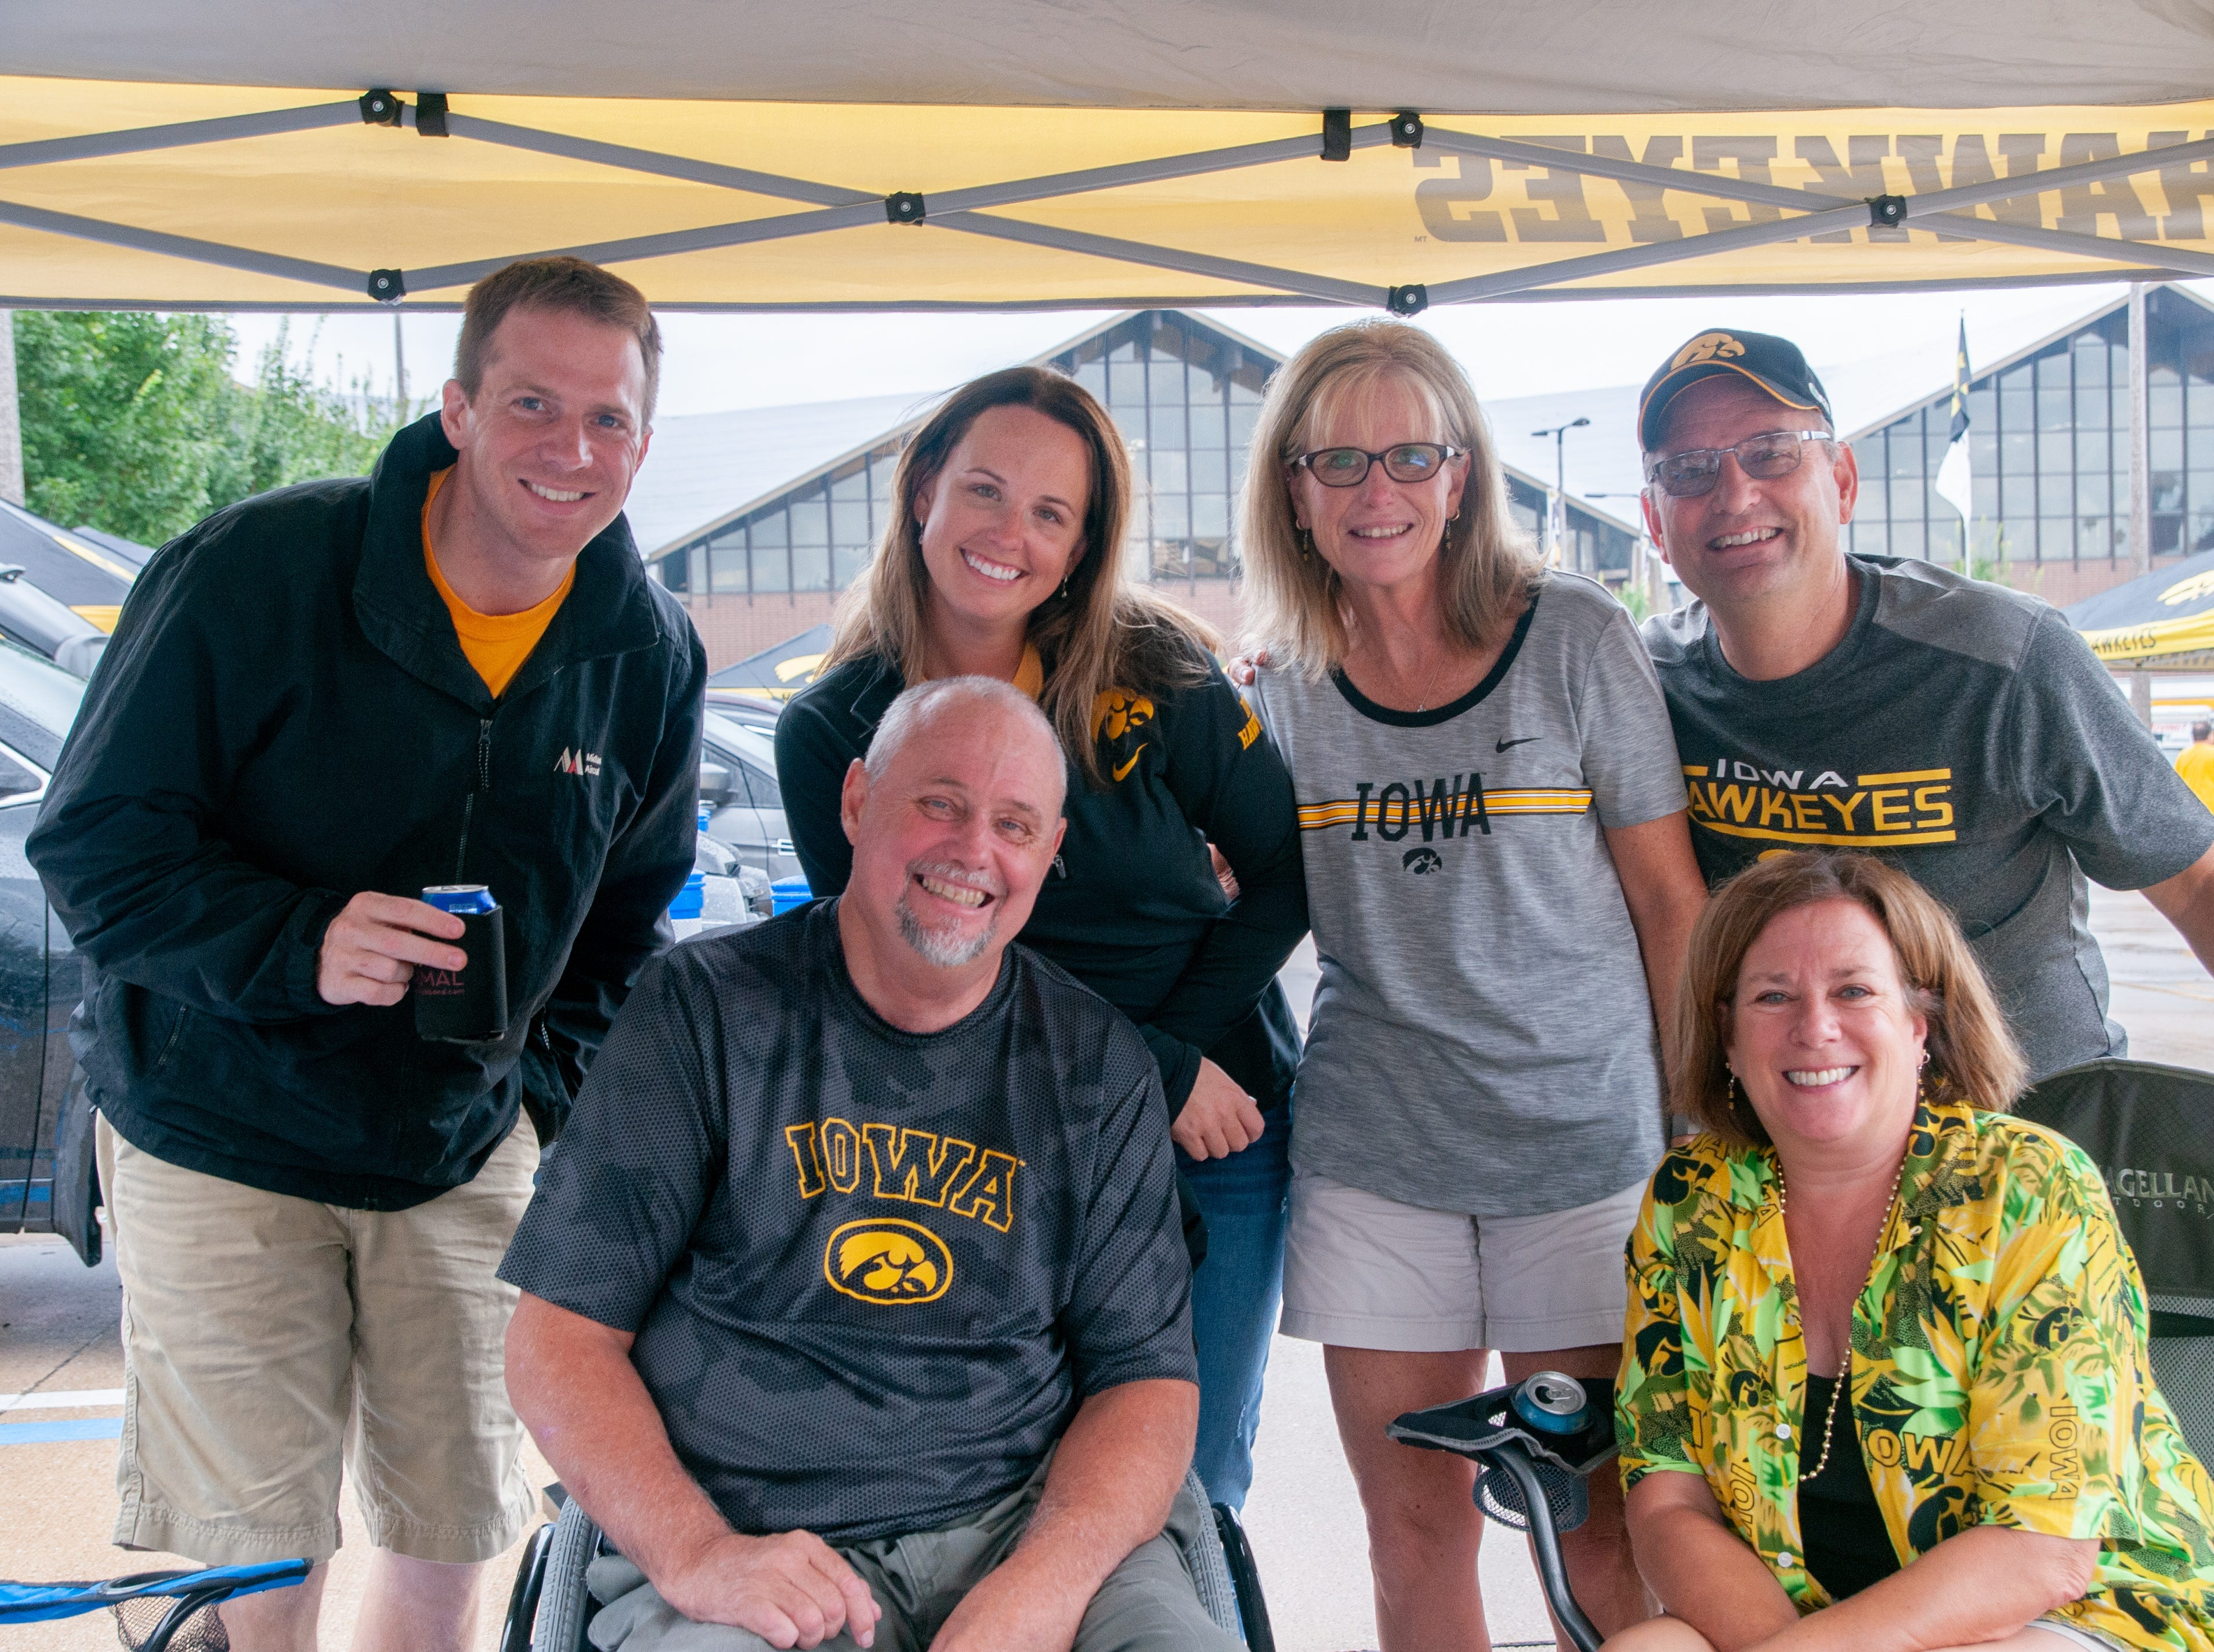 The Jansens, DeGoegy and Valbrachg families, of Ankeny, Baxter, and Marshalltown, Saturday, Sept. 1, 2018, while tailgating before the Iowa game against Northern Illinois in Iowa City.